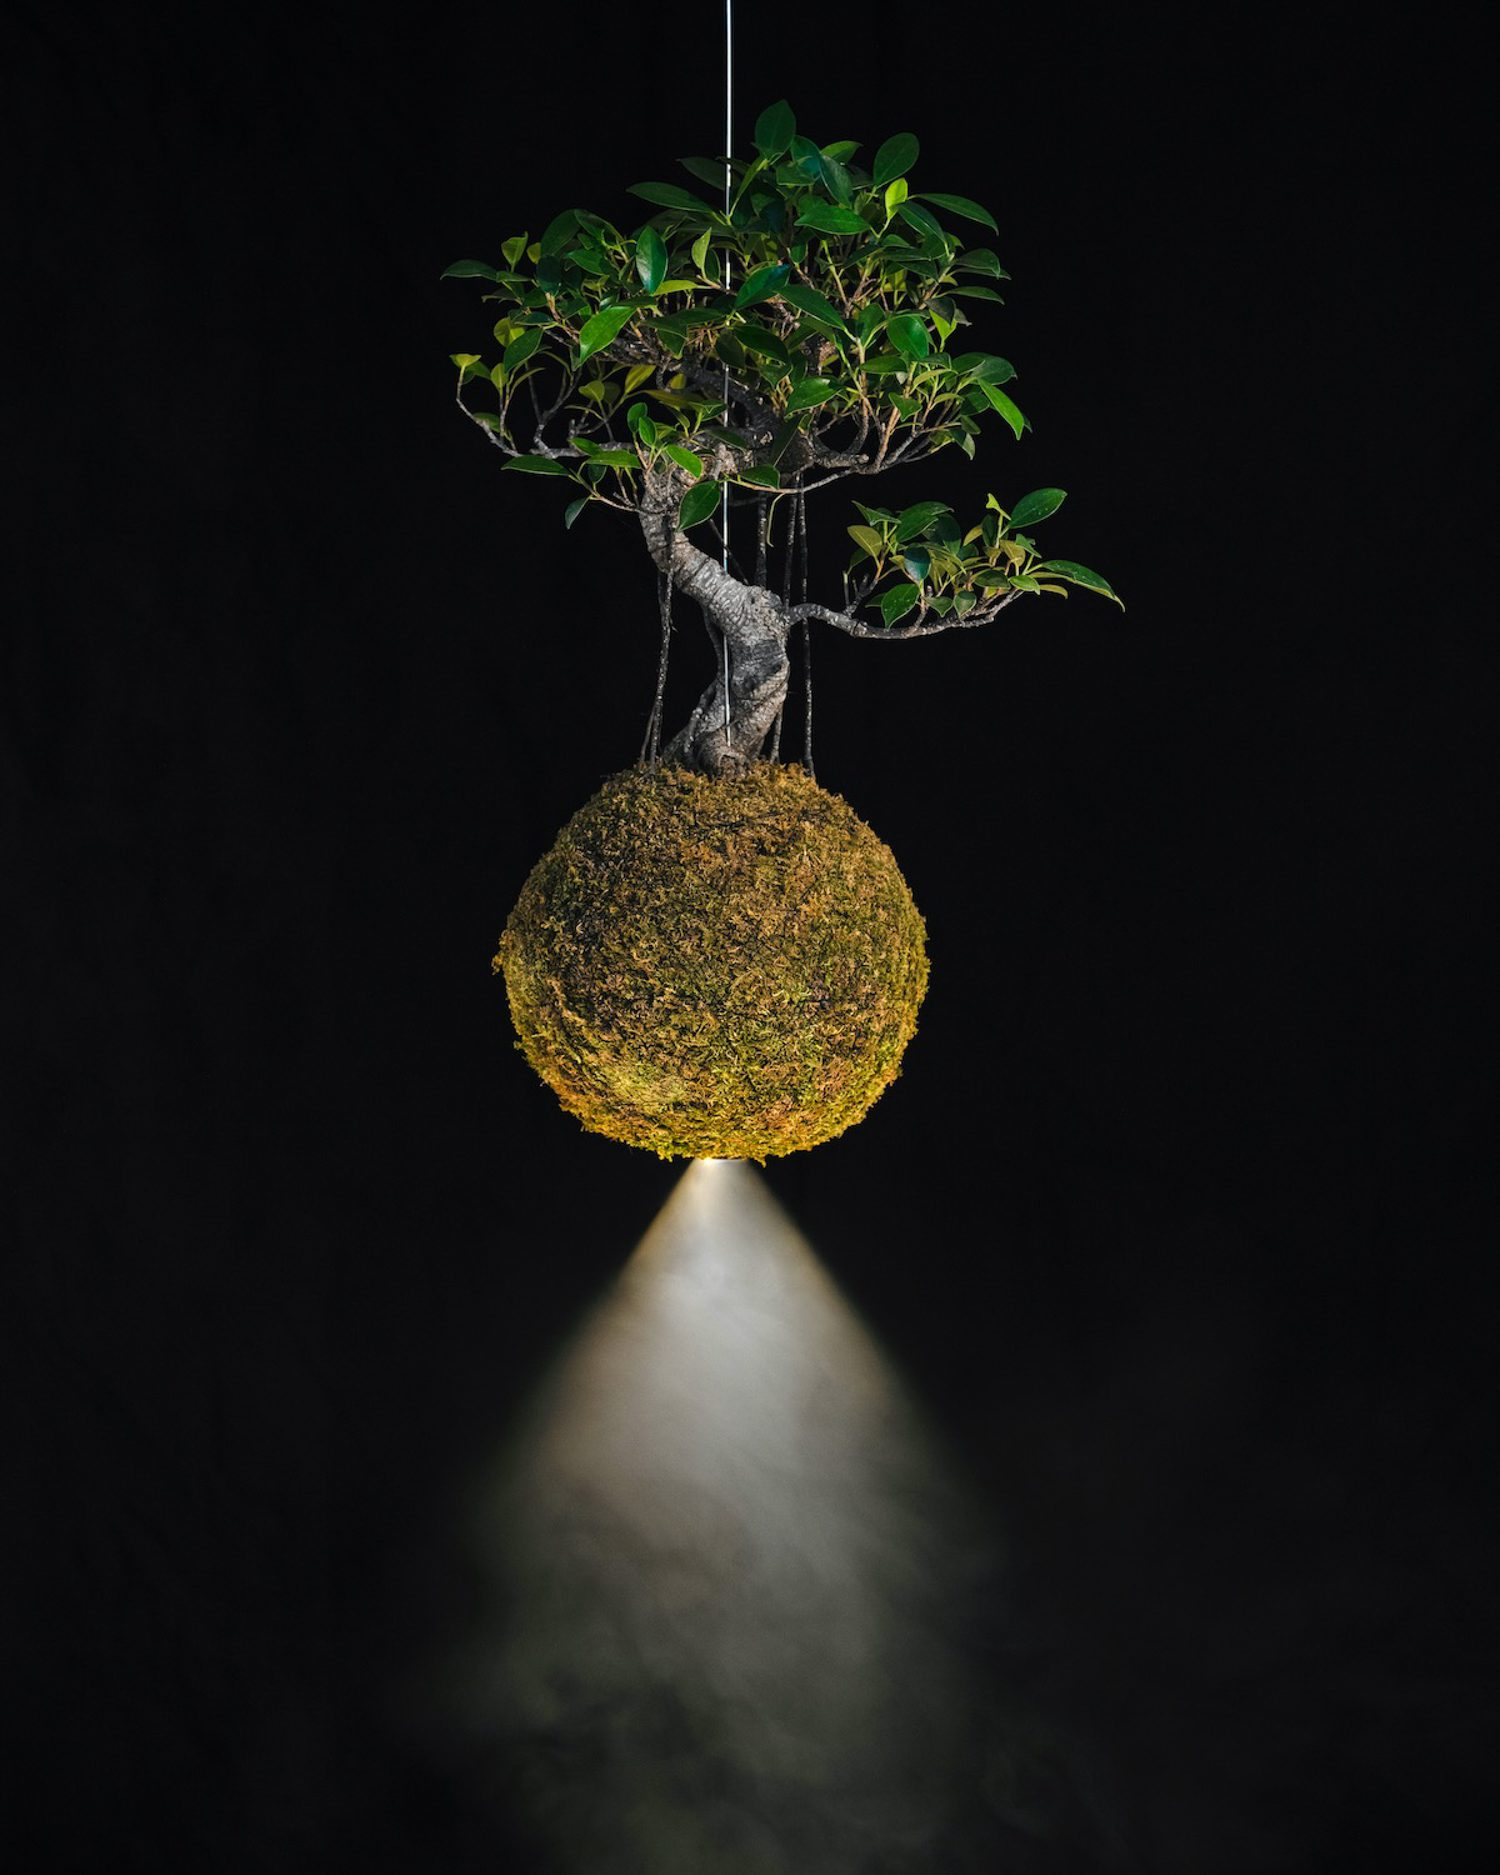 Flora – specifically a Bonsai di Ficus Retusa – is integrated into the hand-assembled, rechargeable battery-powered, aluminum, brass, and iron Halo Leaf lamp by Mandalaki Studio, shown at Rossana Orlandi Gallery.